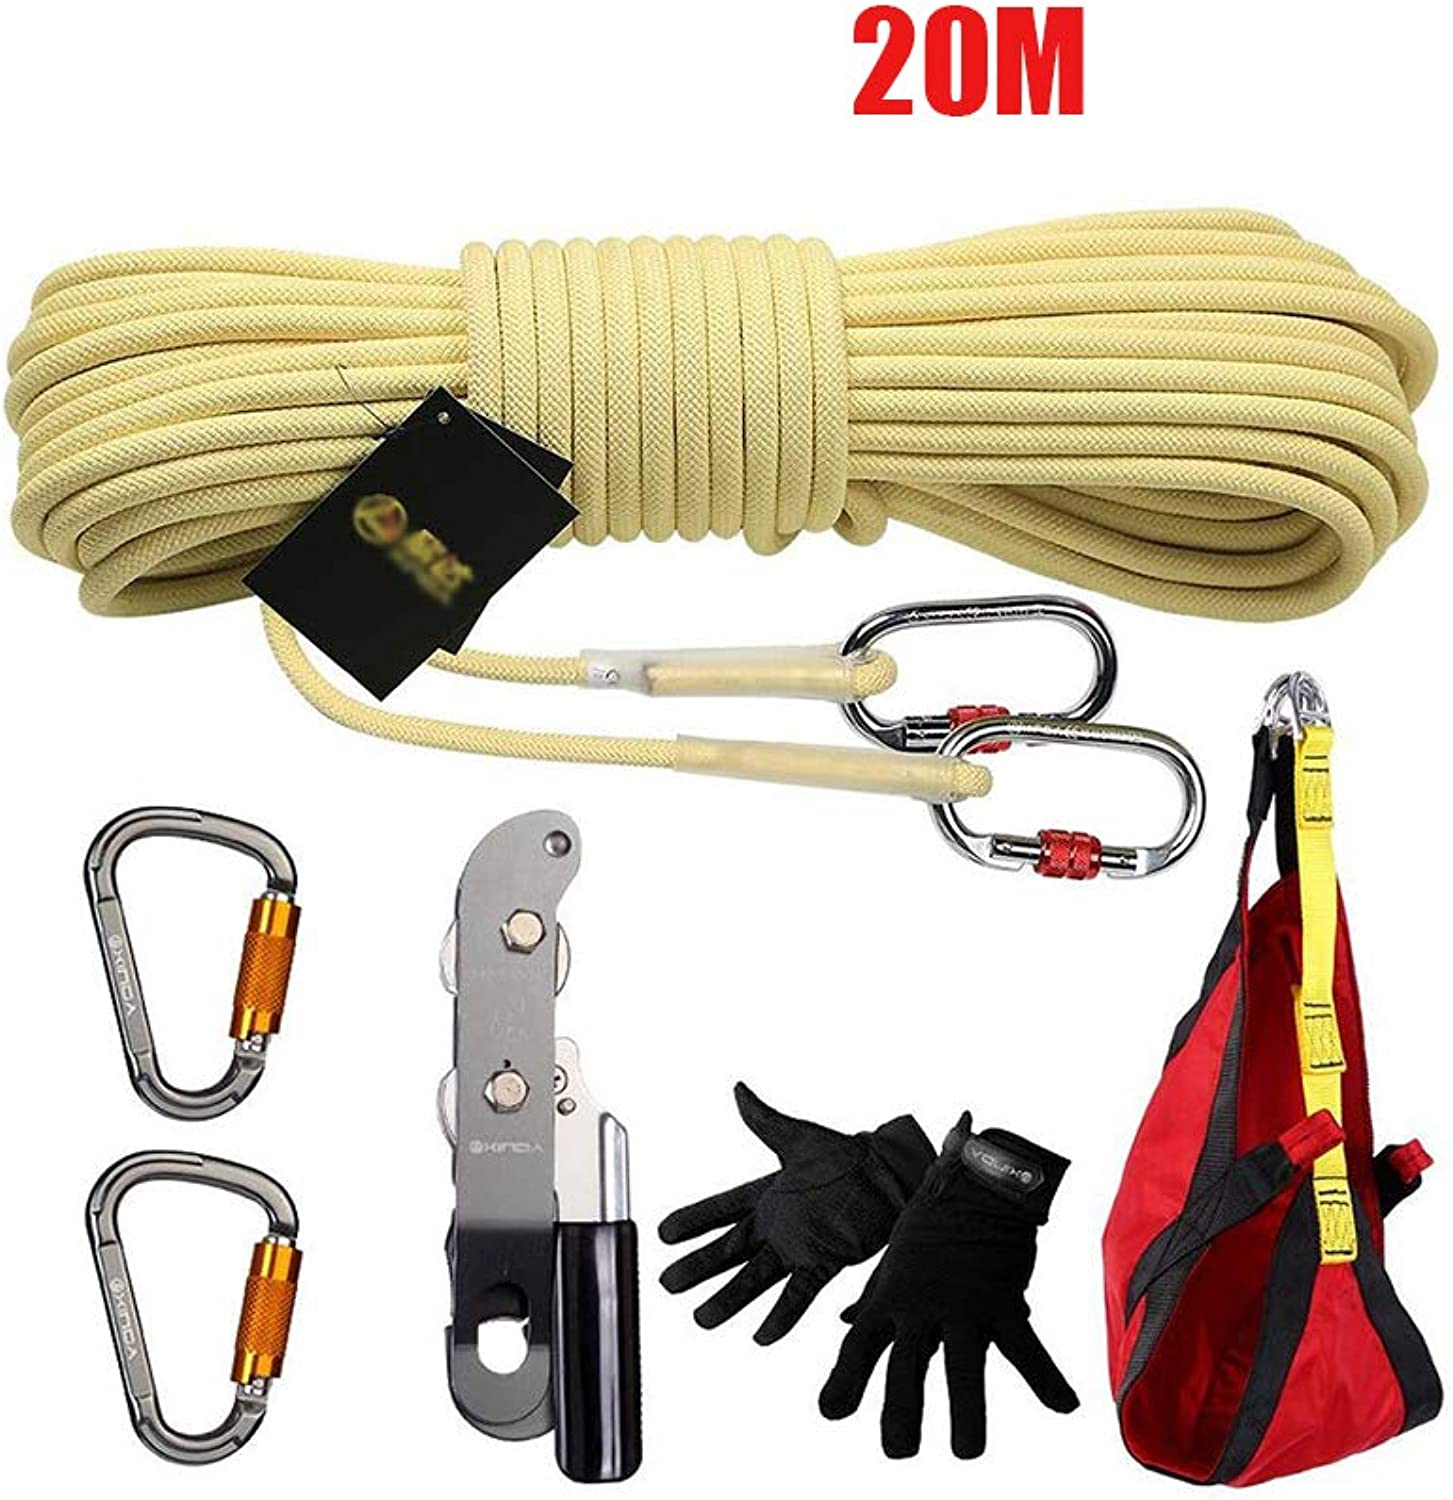 20M Climbing Kit, Outdoor Rope Rescue Fire Earthquake Emergency Rescue Set LifeSaving Safety Rope HighRise Descending Device